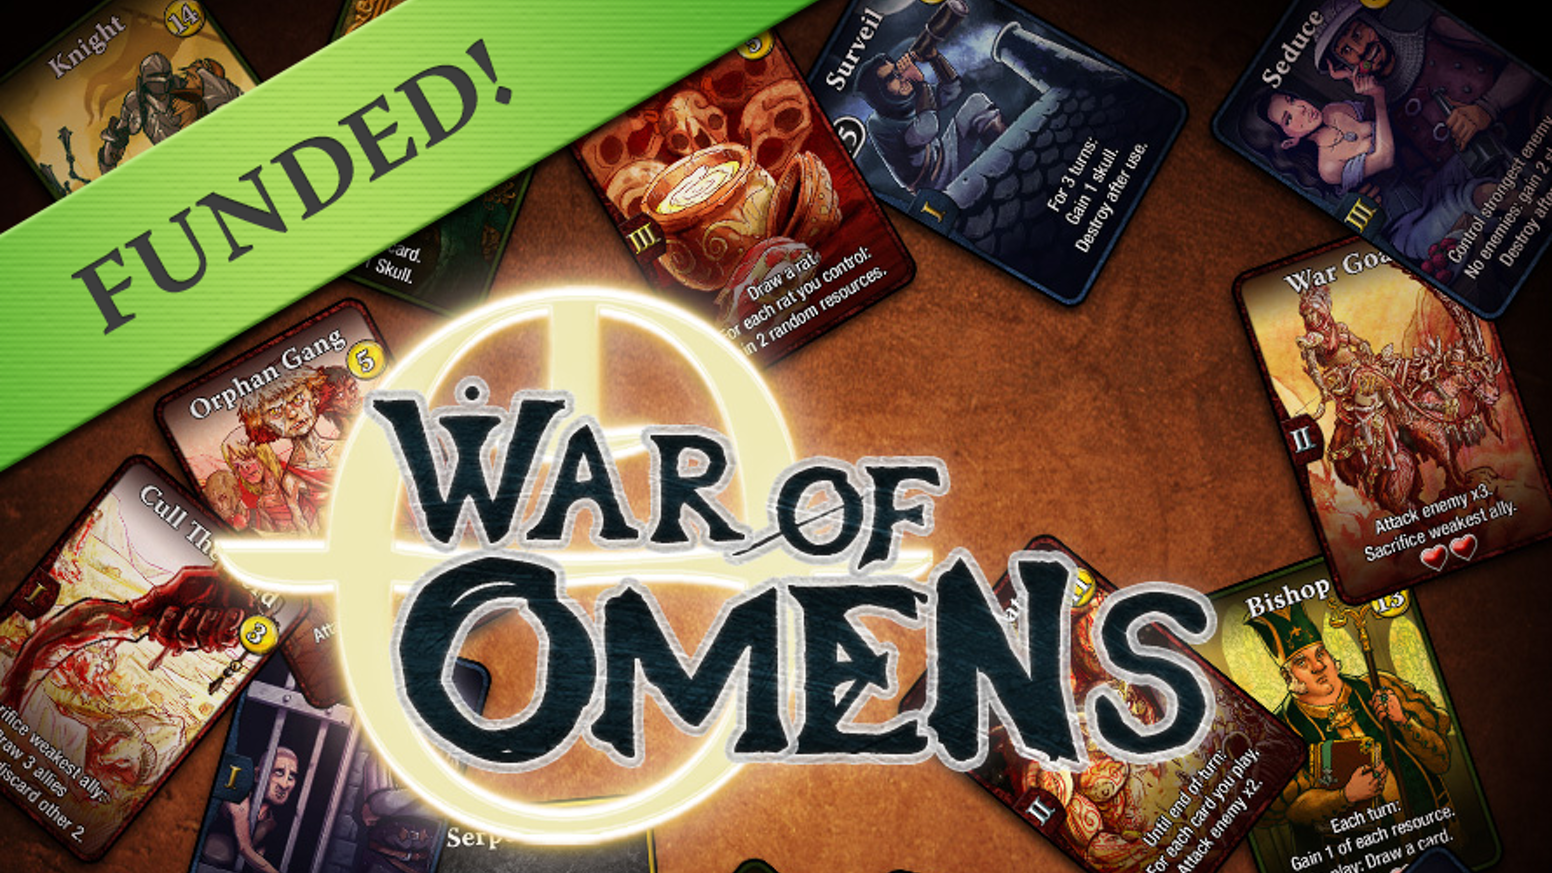 War of Omens is a card game combining deck-builder and CCG mechanics, featuring fast, strategic play and 3 different playable factions.